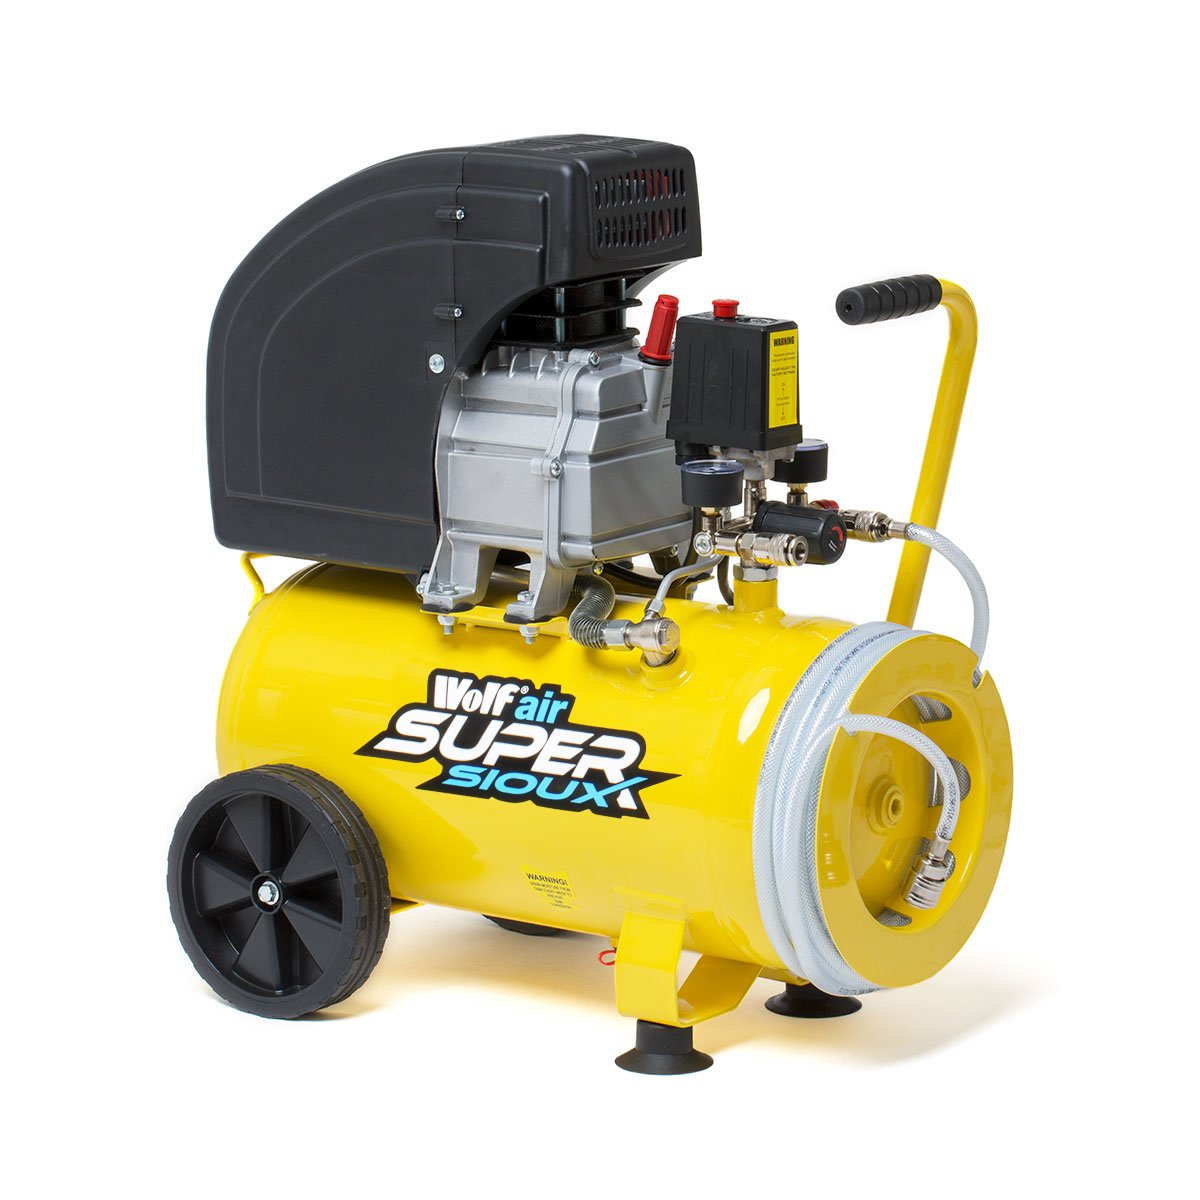 Wolf Air 24 Litre 9.6 CFM 10 BAR 150PSI 2.5HP 1800W 230V Super Sioux Air Compressor with Integrated Hose Reel - 2 Years Warranty